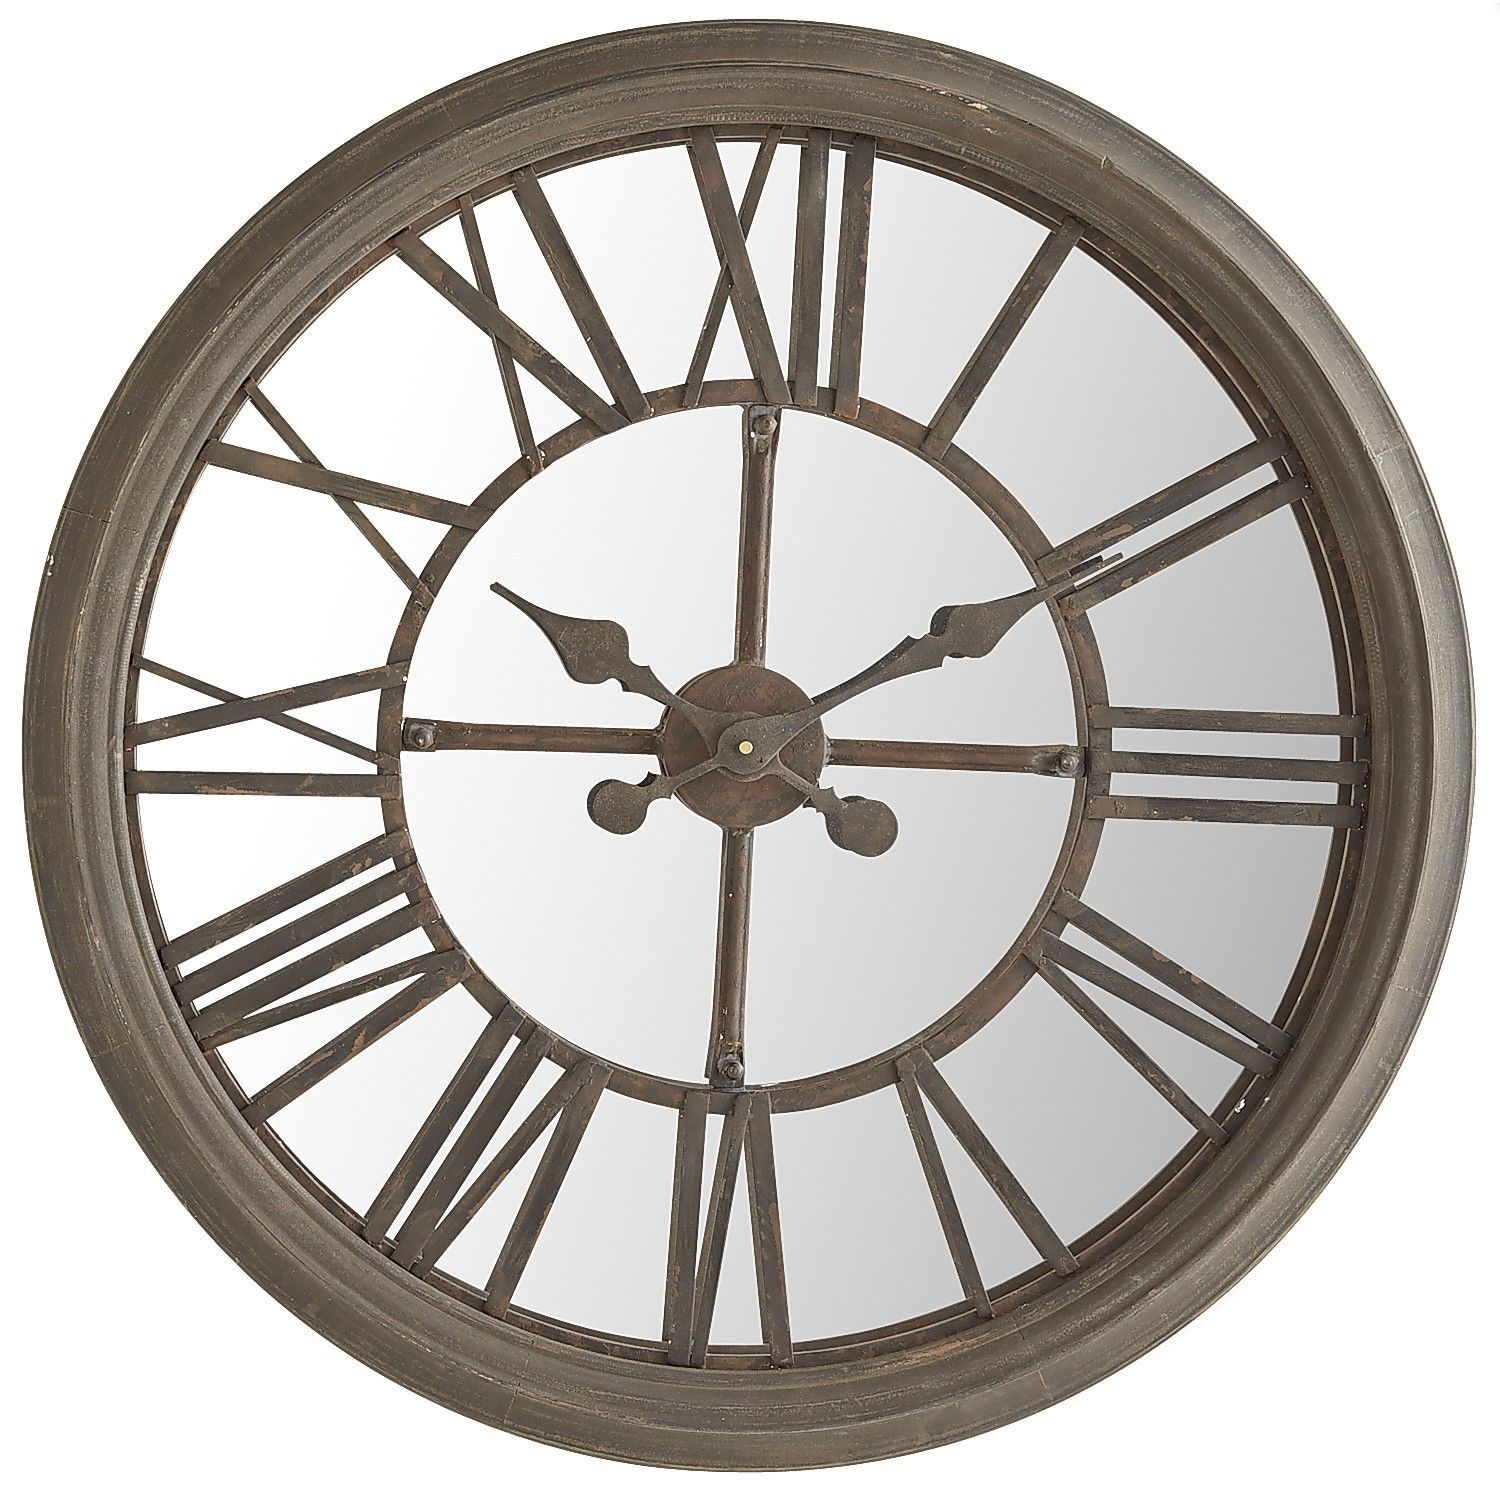 Rustic Mirrored Wall Clock | Pier 1 Imports. A large ...